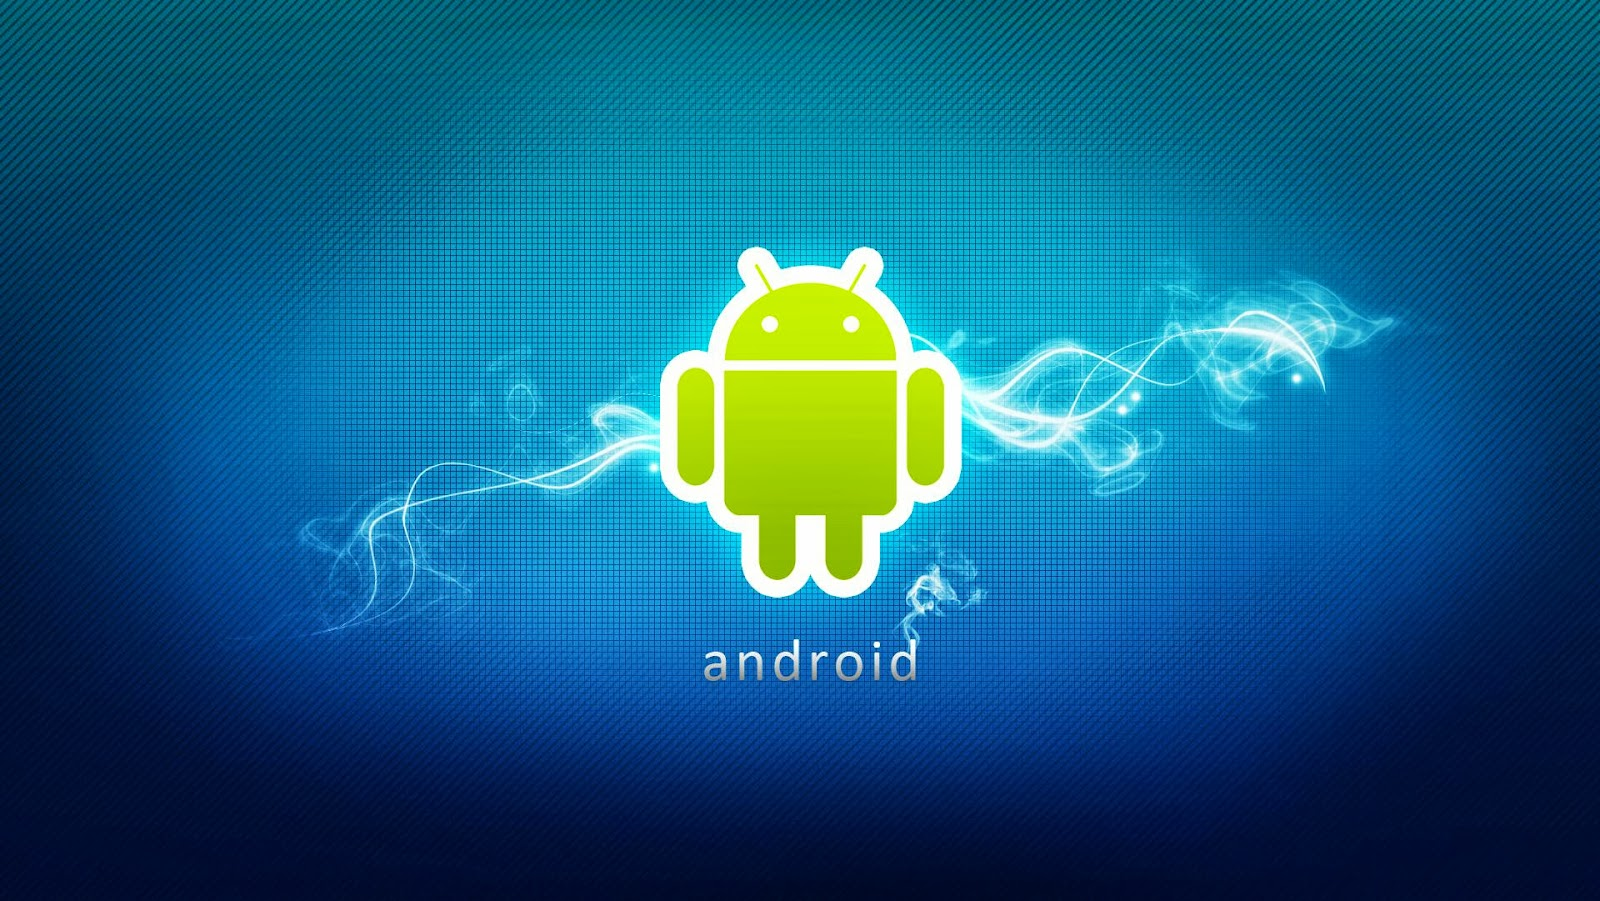 android wallpaper blue